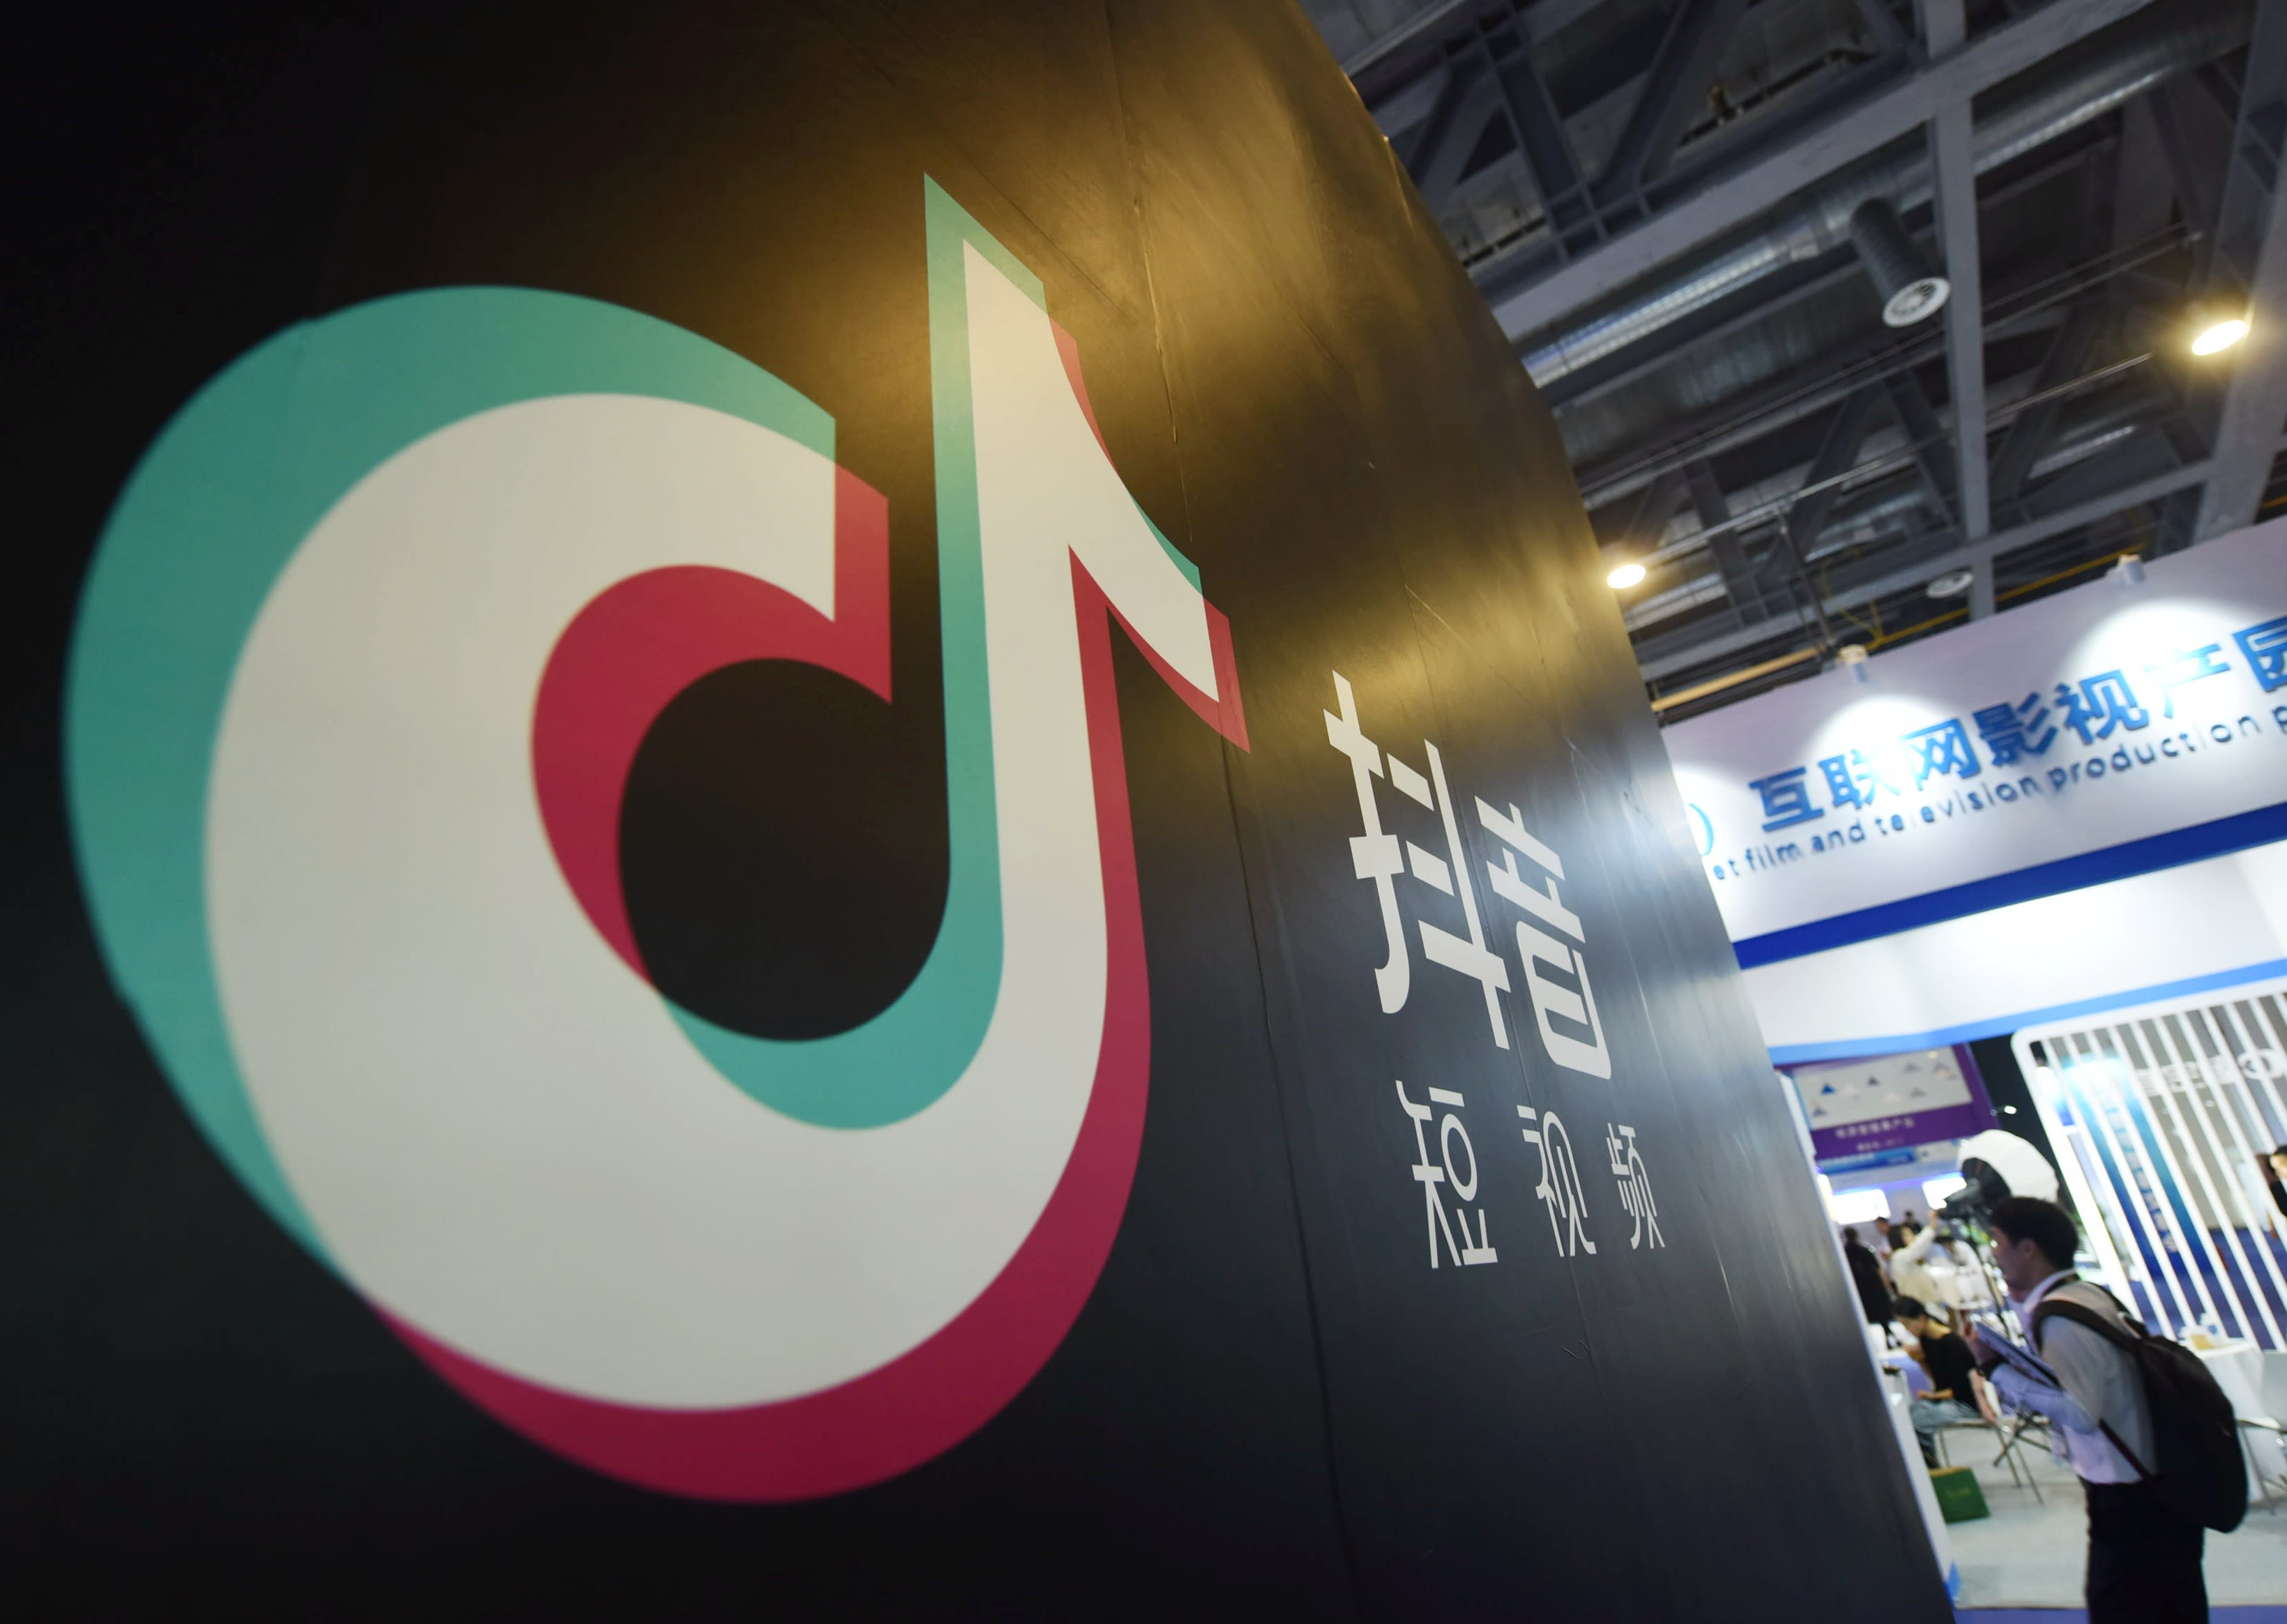 TikTok chief to meet with lawmakers next week as suspicions about the app's ties to China grow